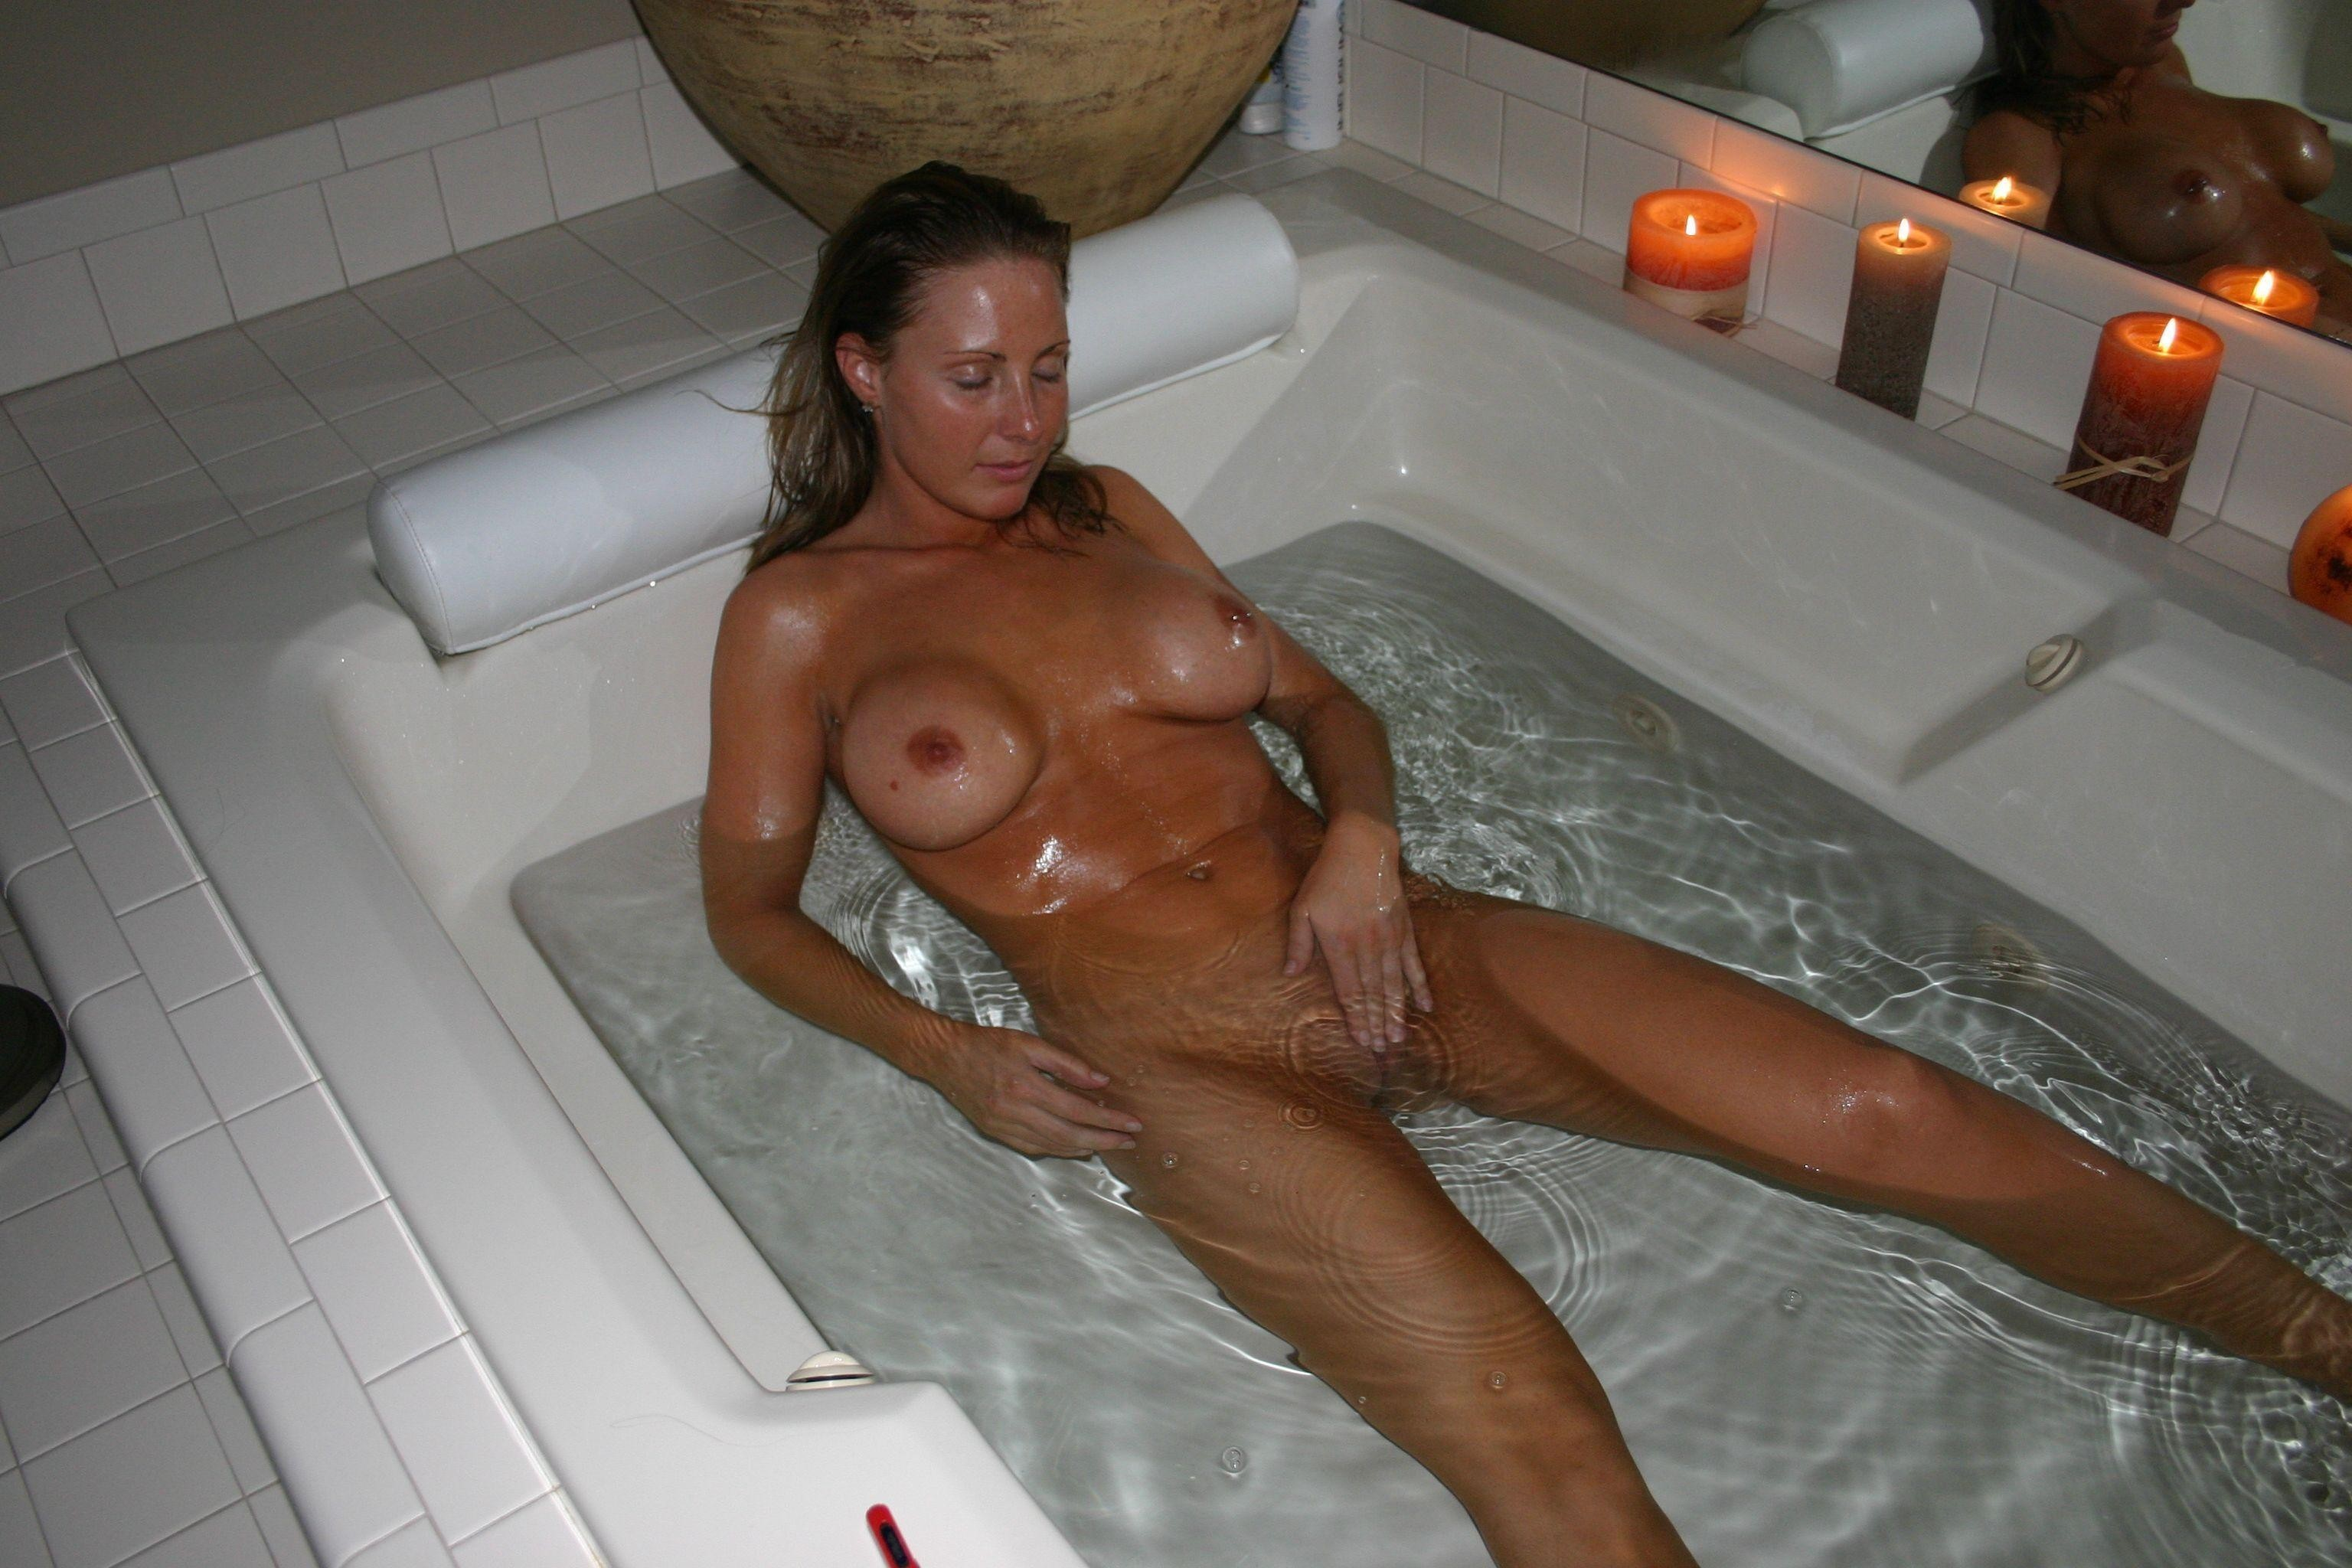 Nude bath pictures